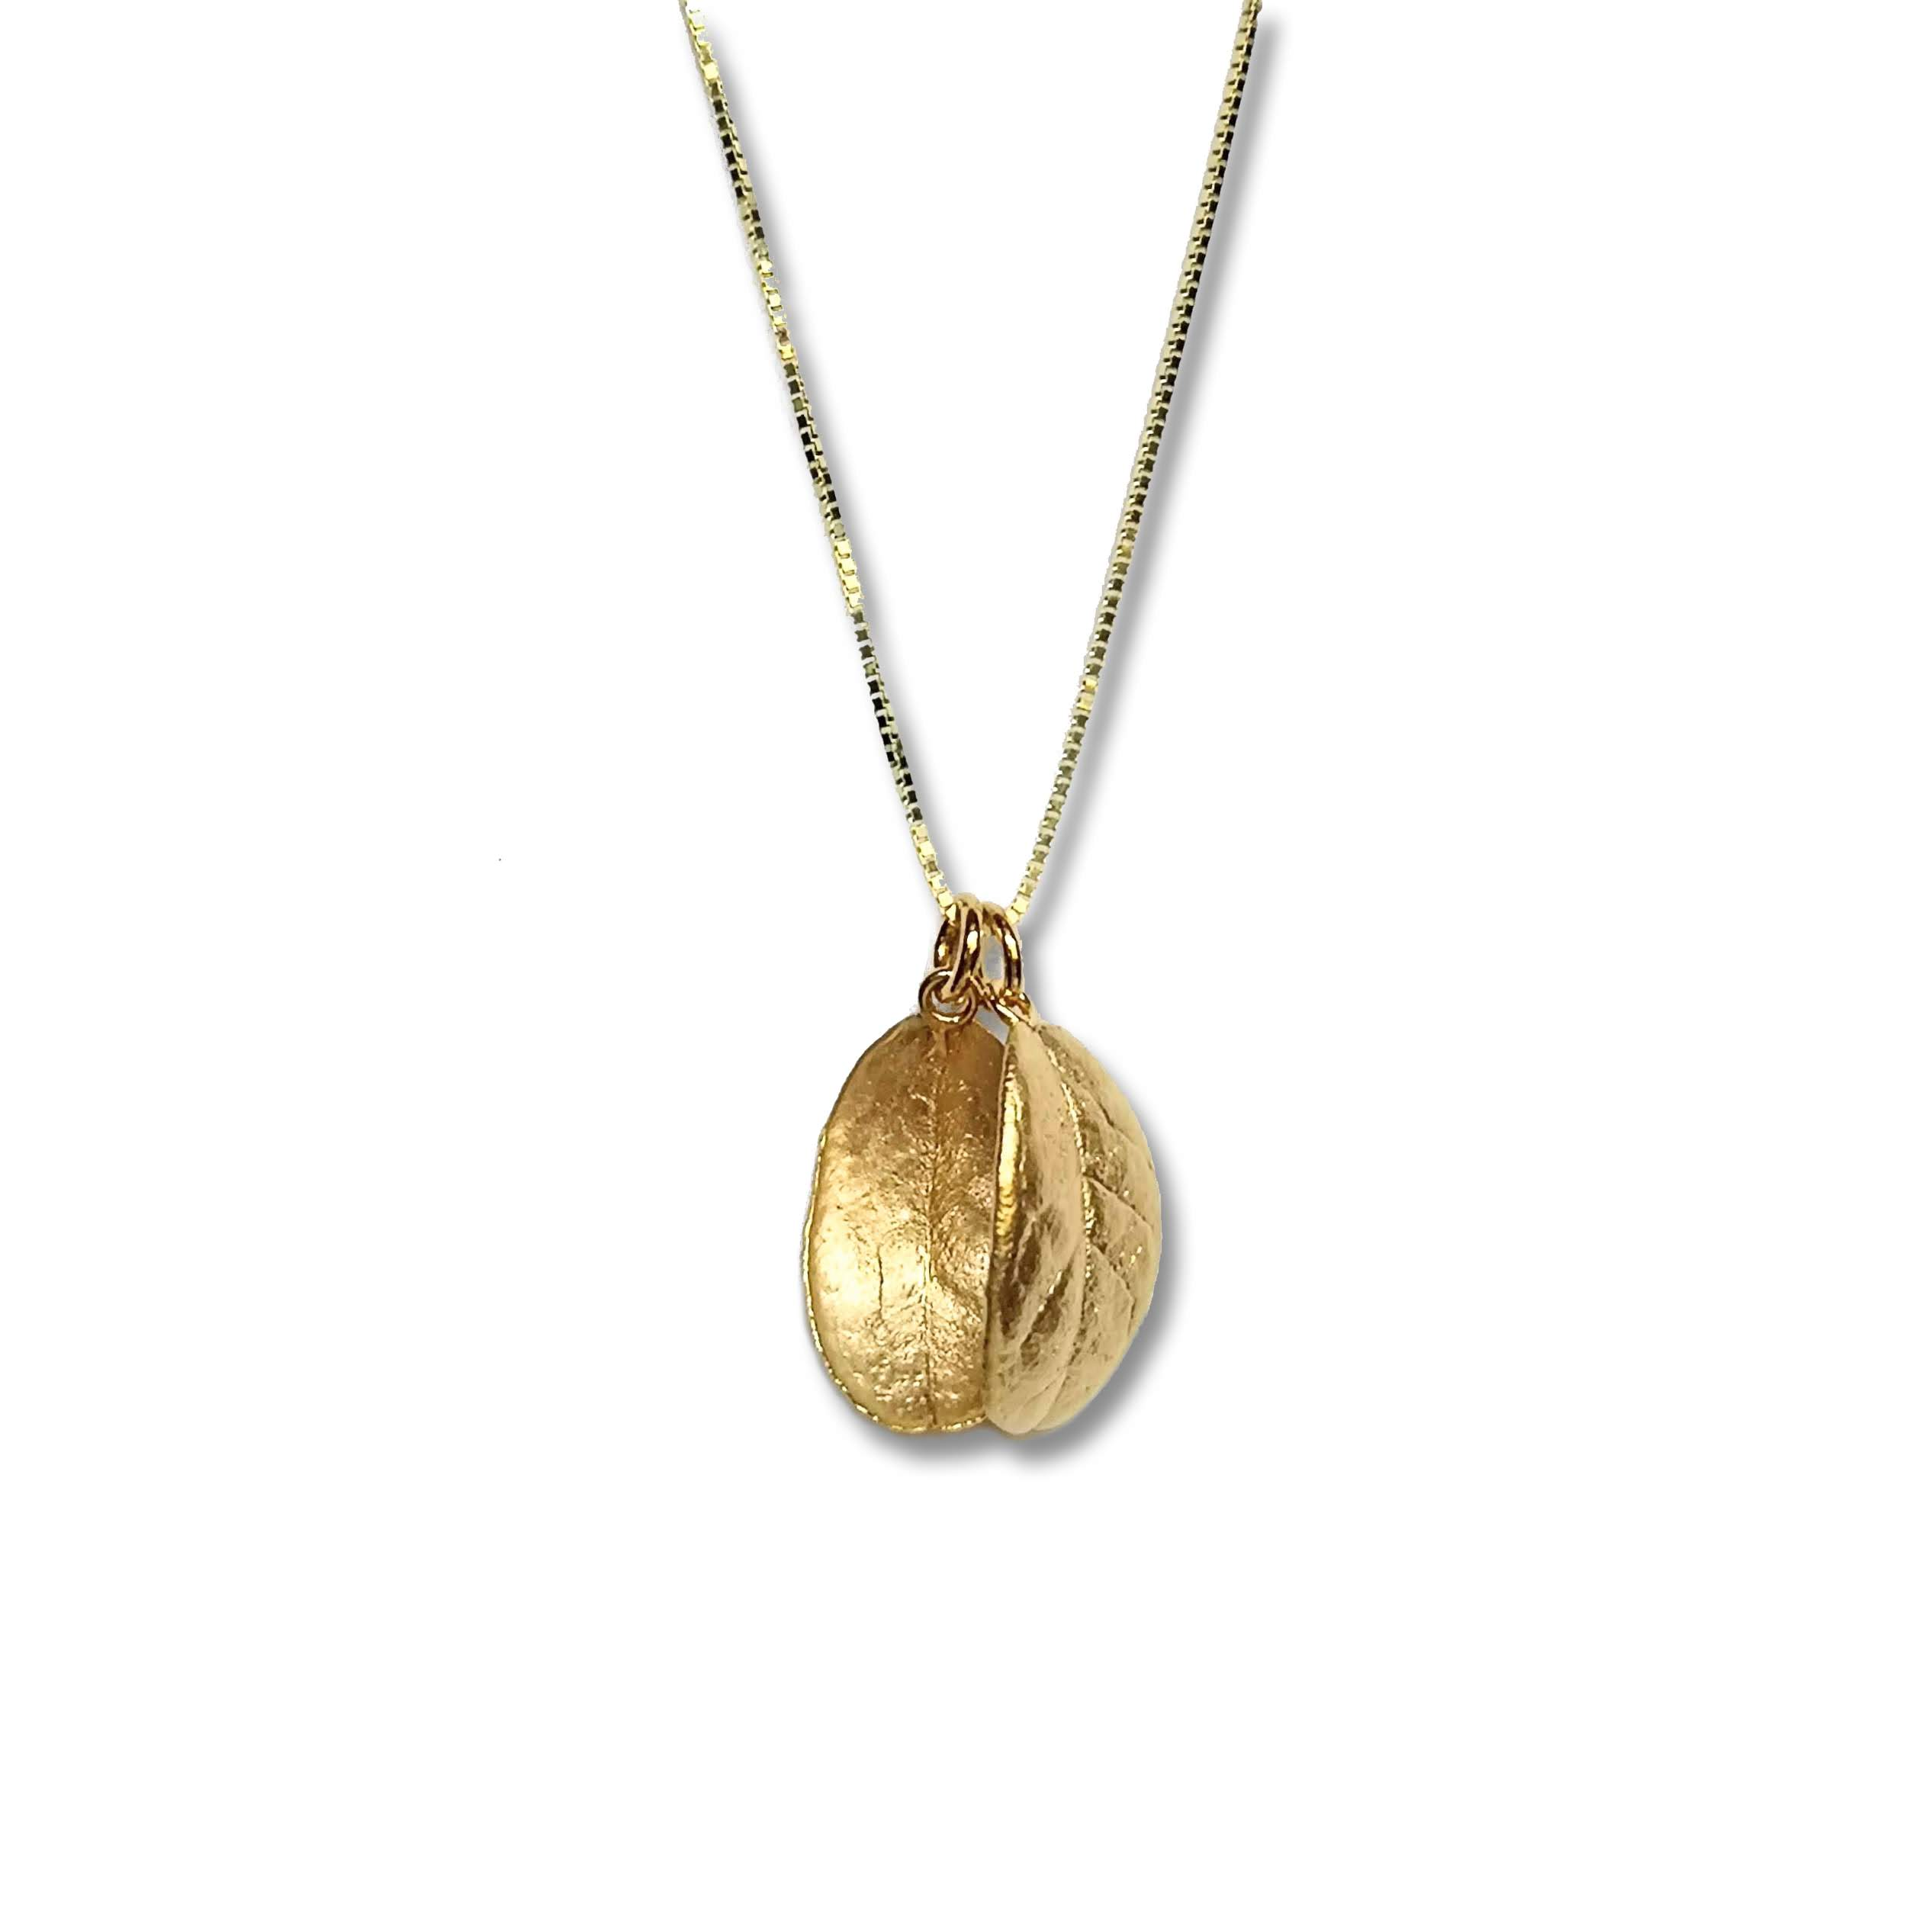 Eternal Lingon necklace, golden